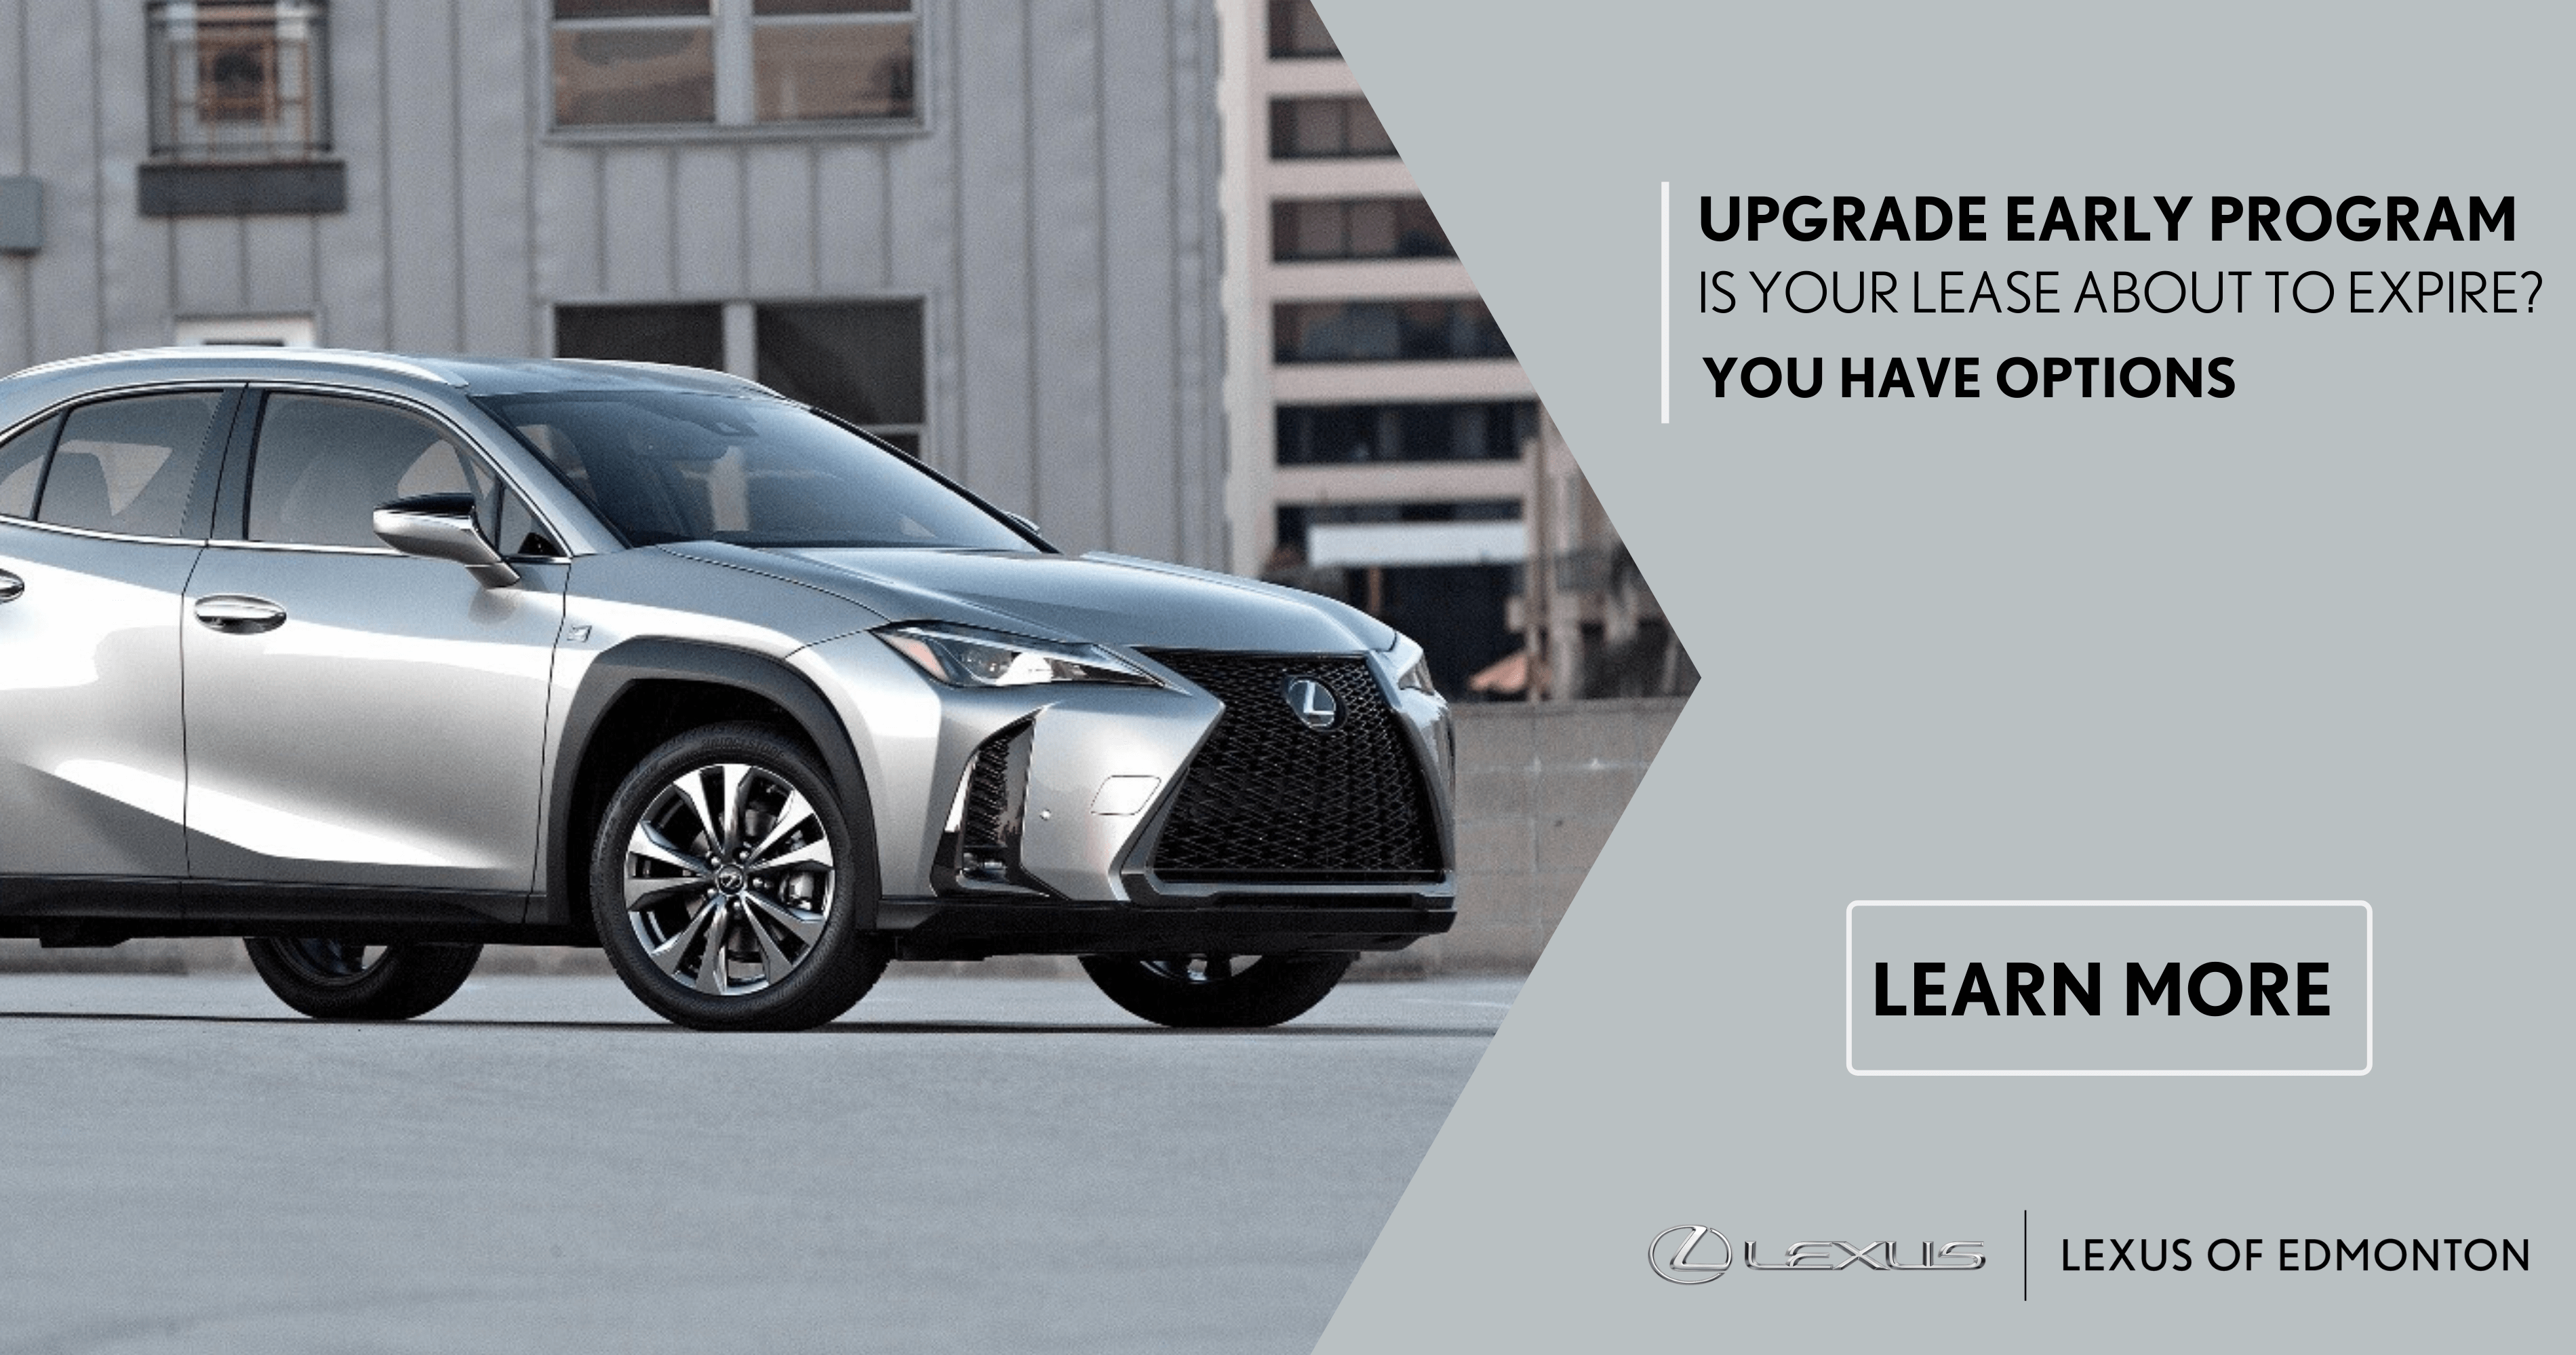 Upgrade Early Program - Is your lease about to expire? You have options.